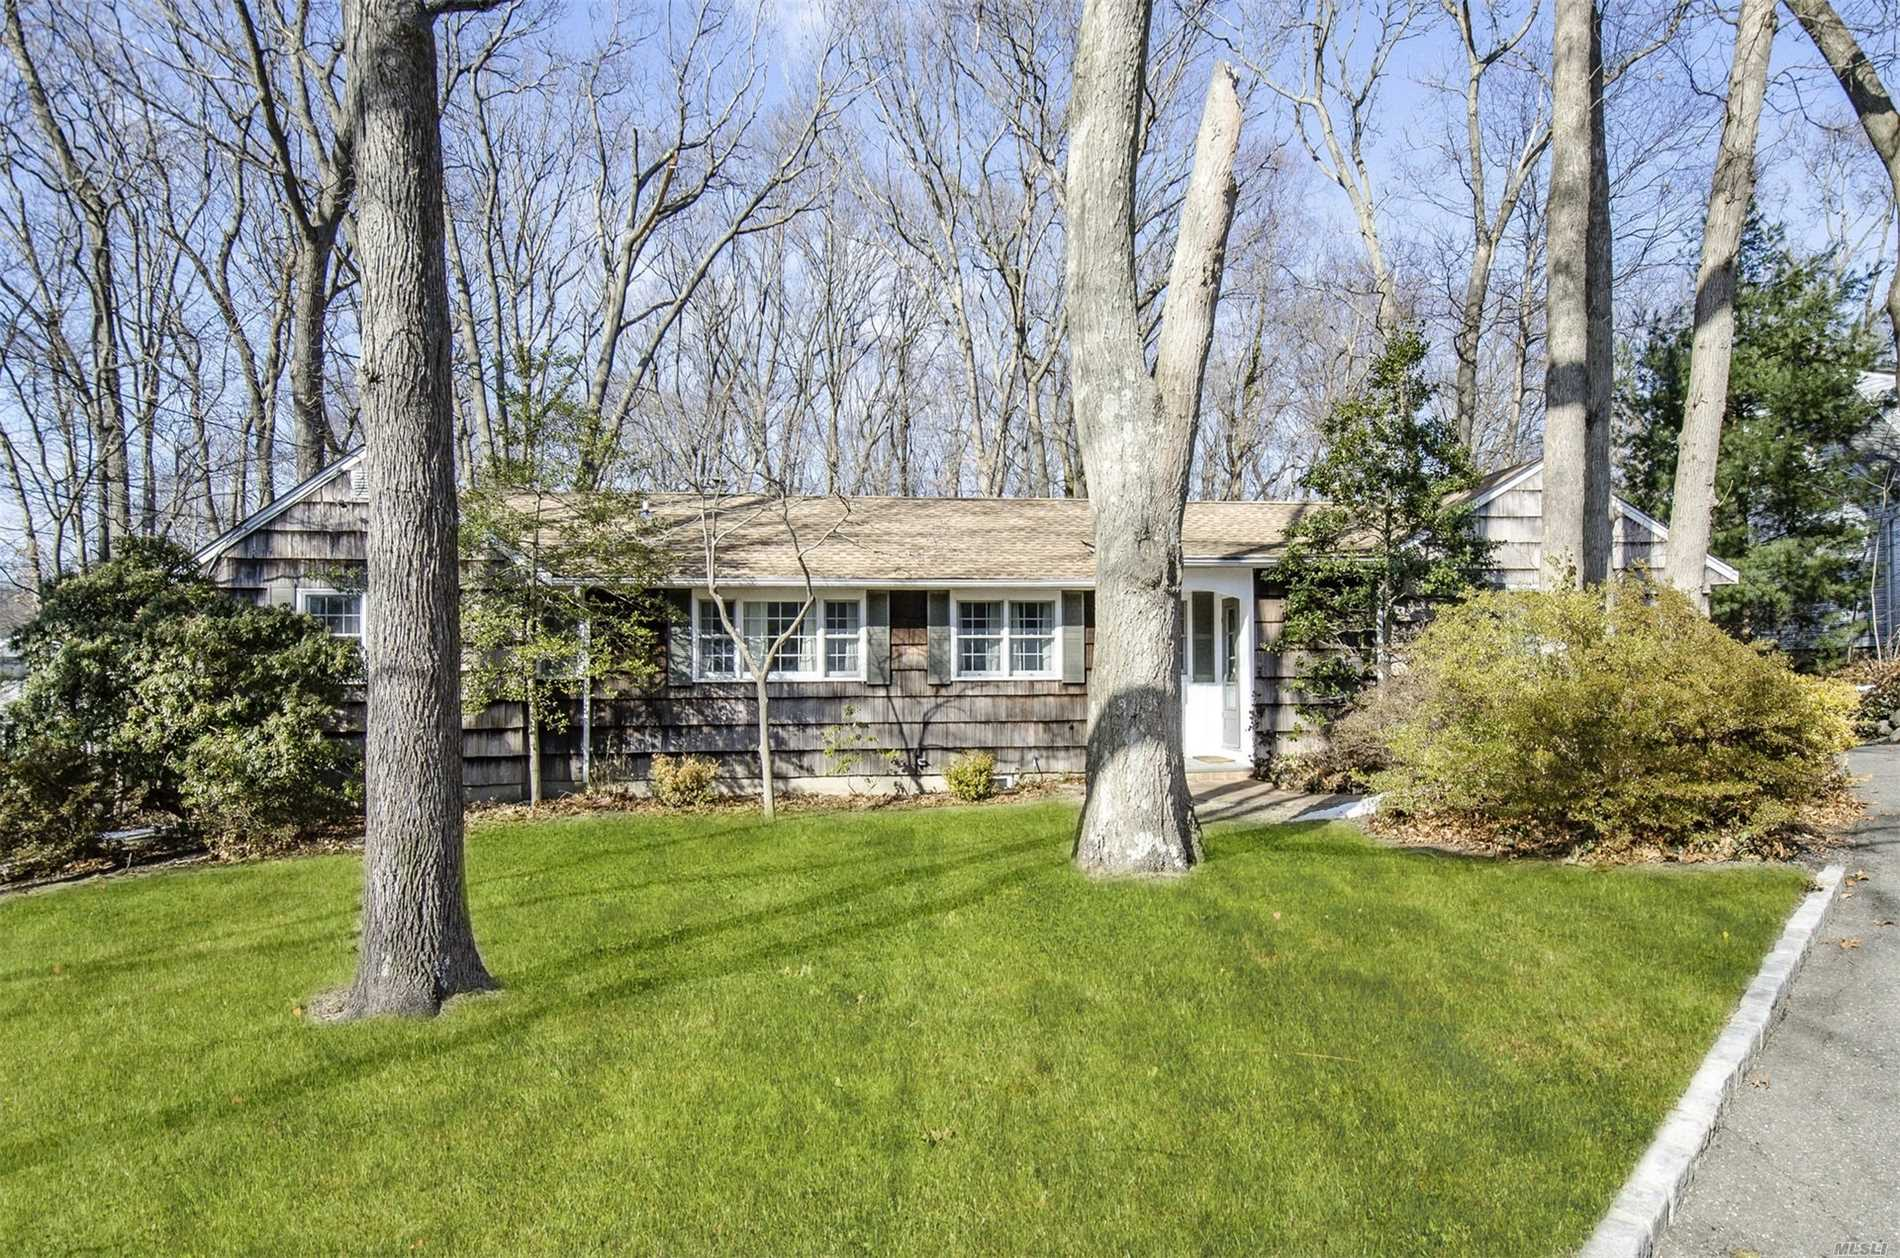 Do not miss this charming well maintained 3 bedroom 2bath ranch home on great flat wooded .43 acre in Northport. Beautiful hardwood floors, updated windows, 2 year old roof, full attic and loads of potential. Northport Schools SD#4. Don't wait!